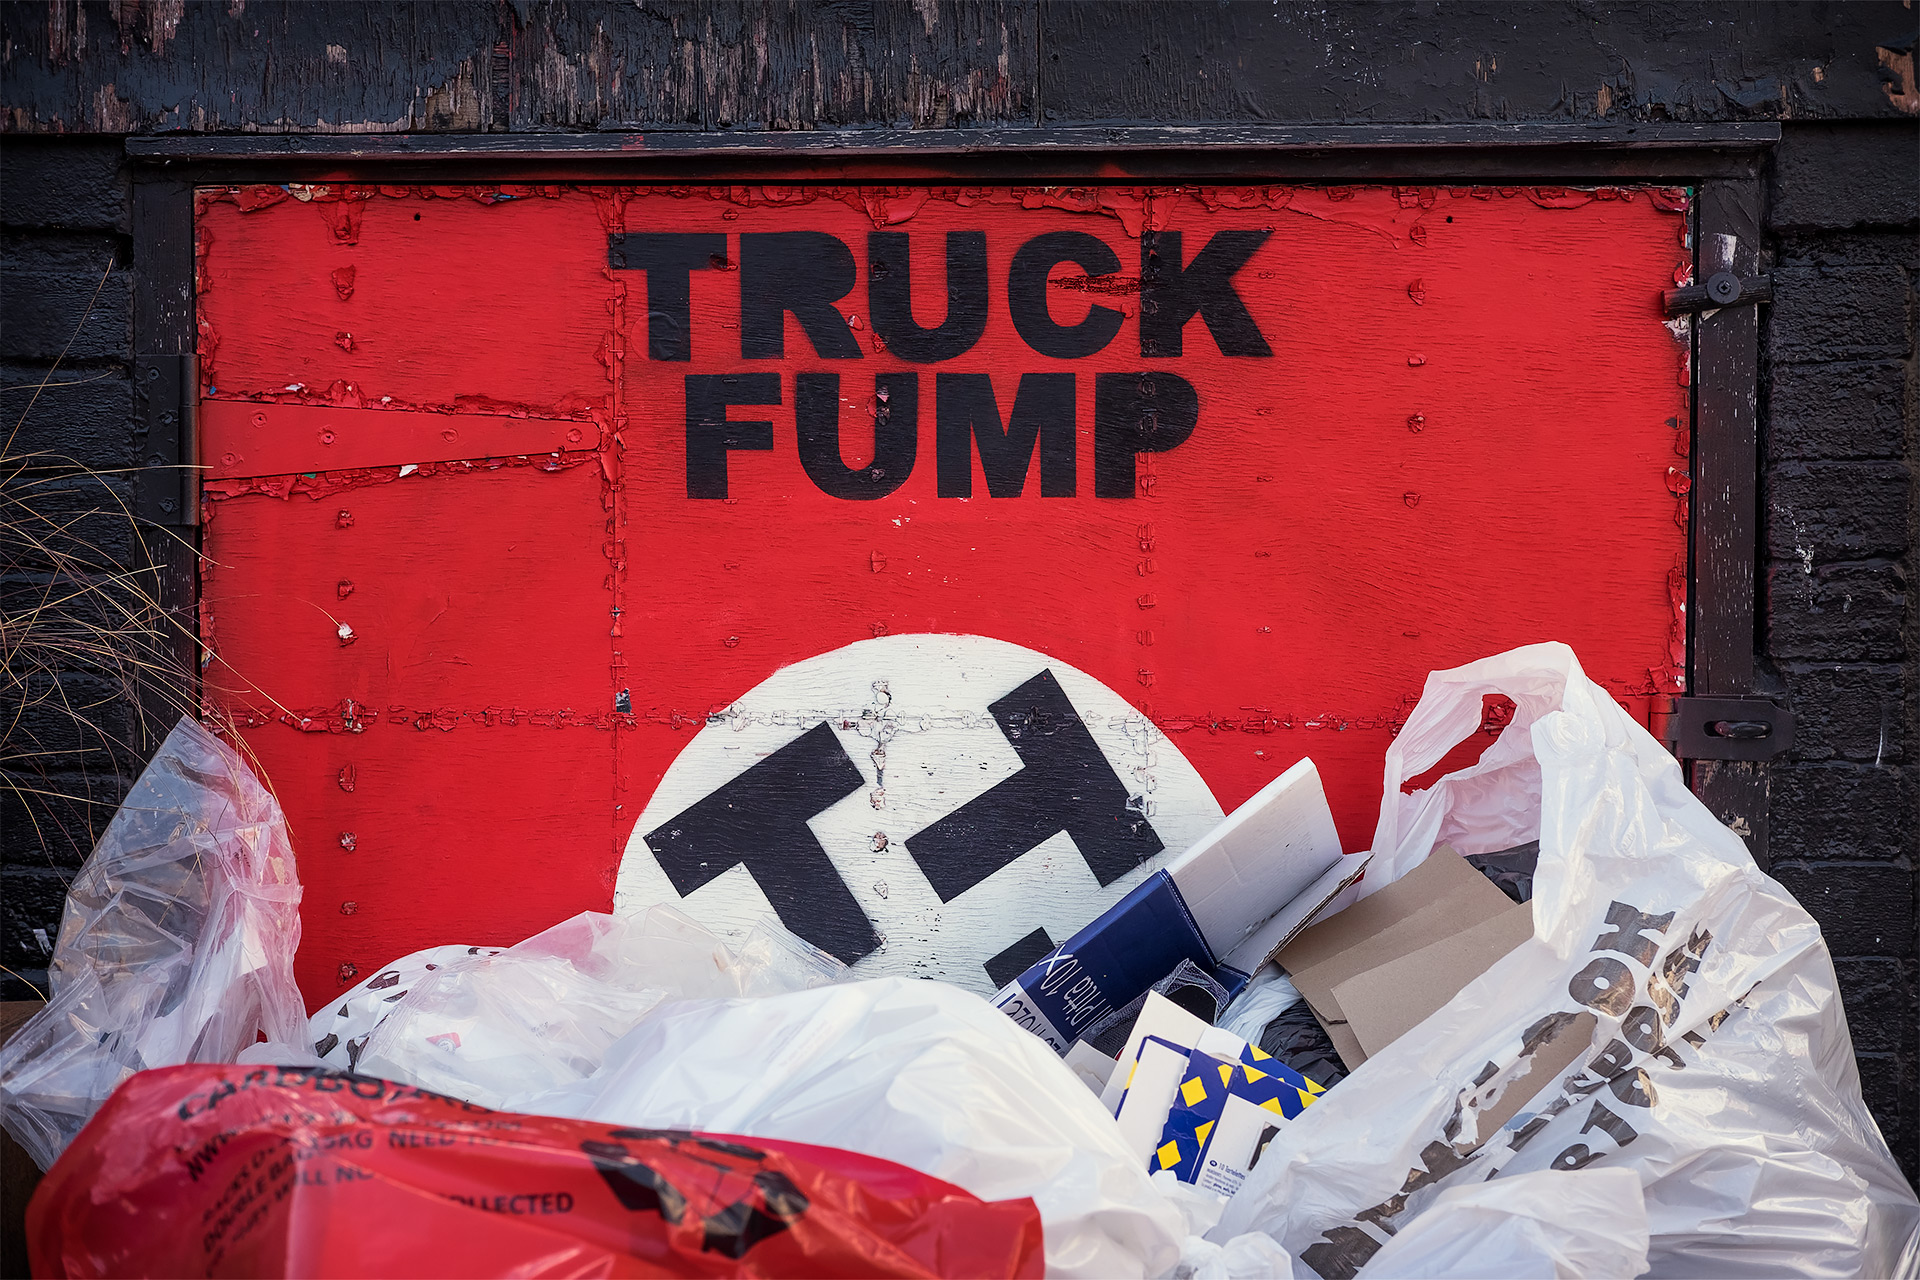 Truck Fump / Street Photography, Show the Original, Photography, Fujinon XF 35mm f/2, Fujifilm X-T1 [truck fump final]